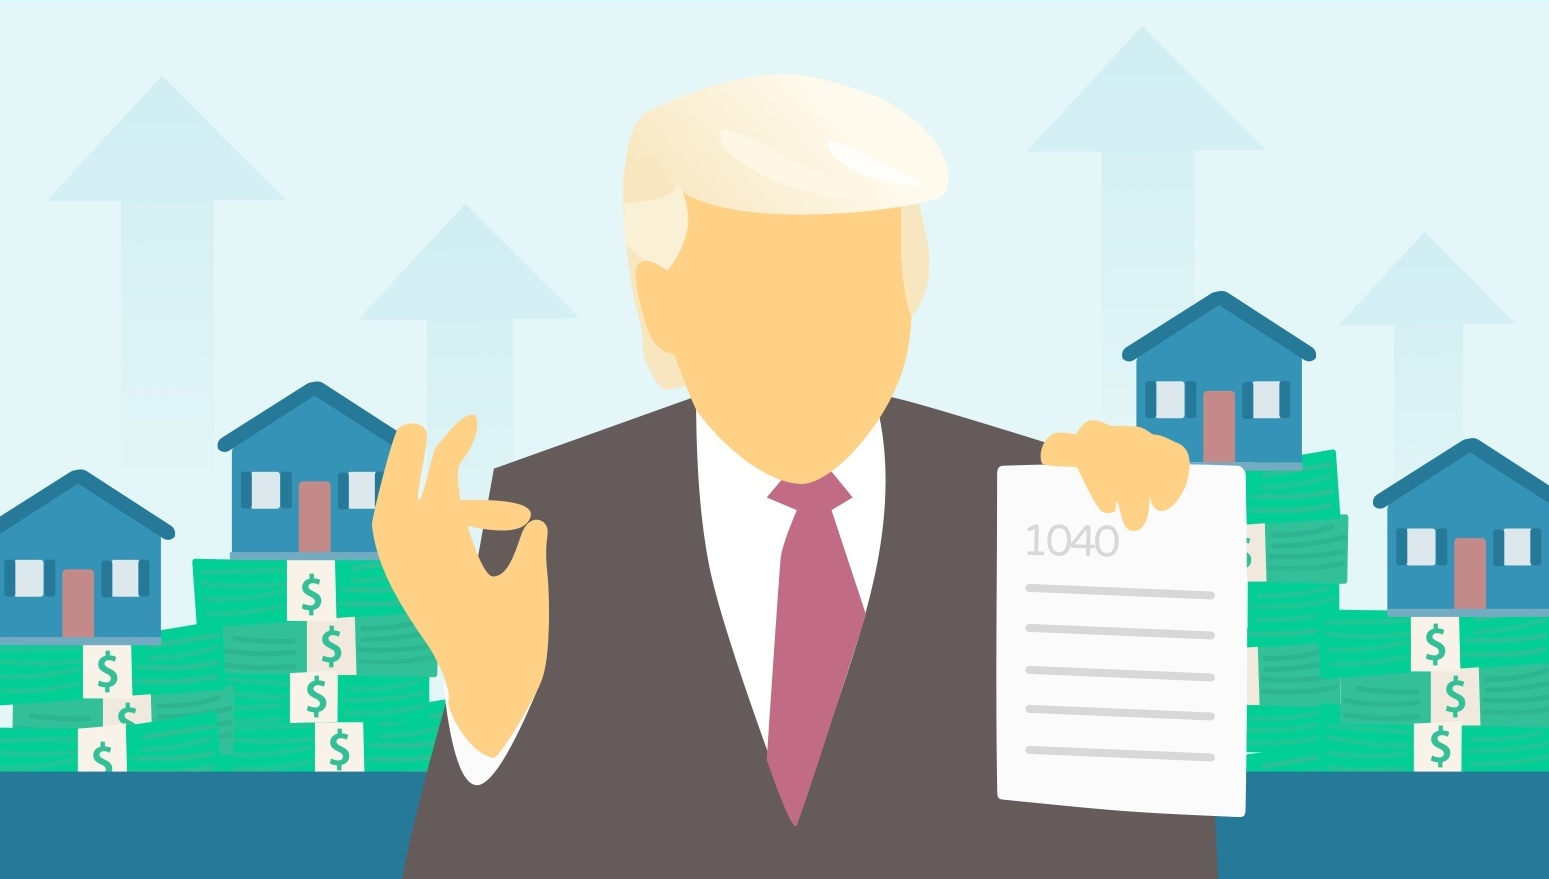 Camp linn haven clipart banner library download The Impact of the New Trump Tax Bill on Homeowners banner library download